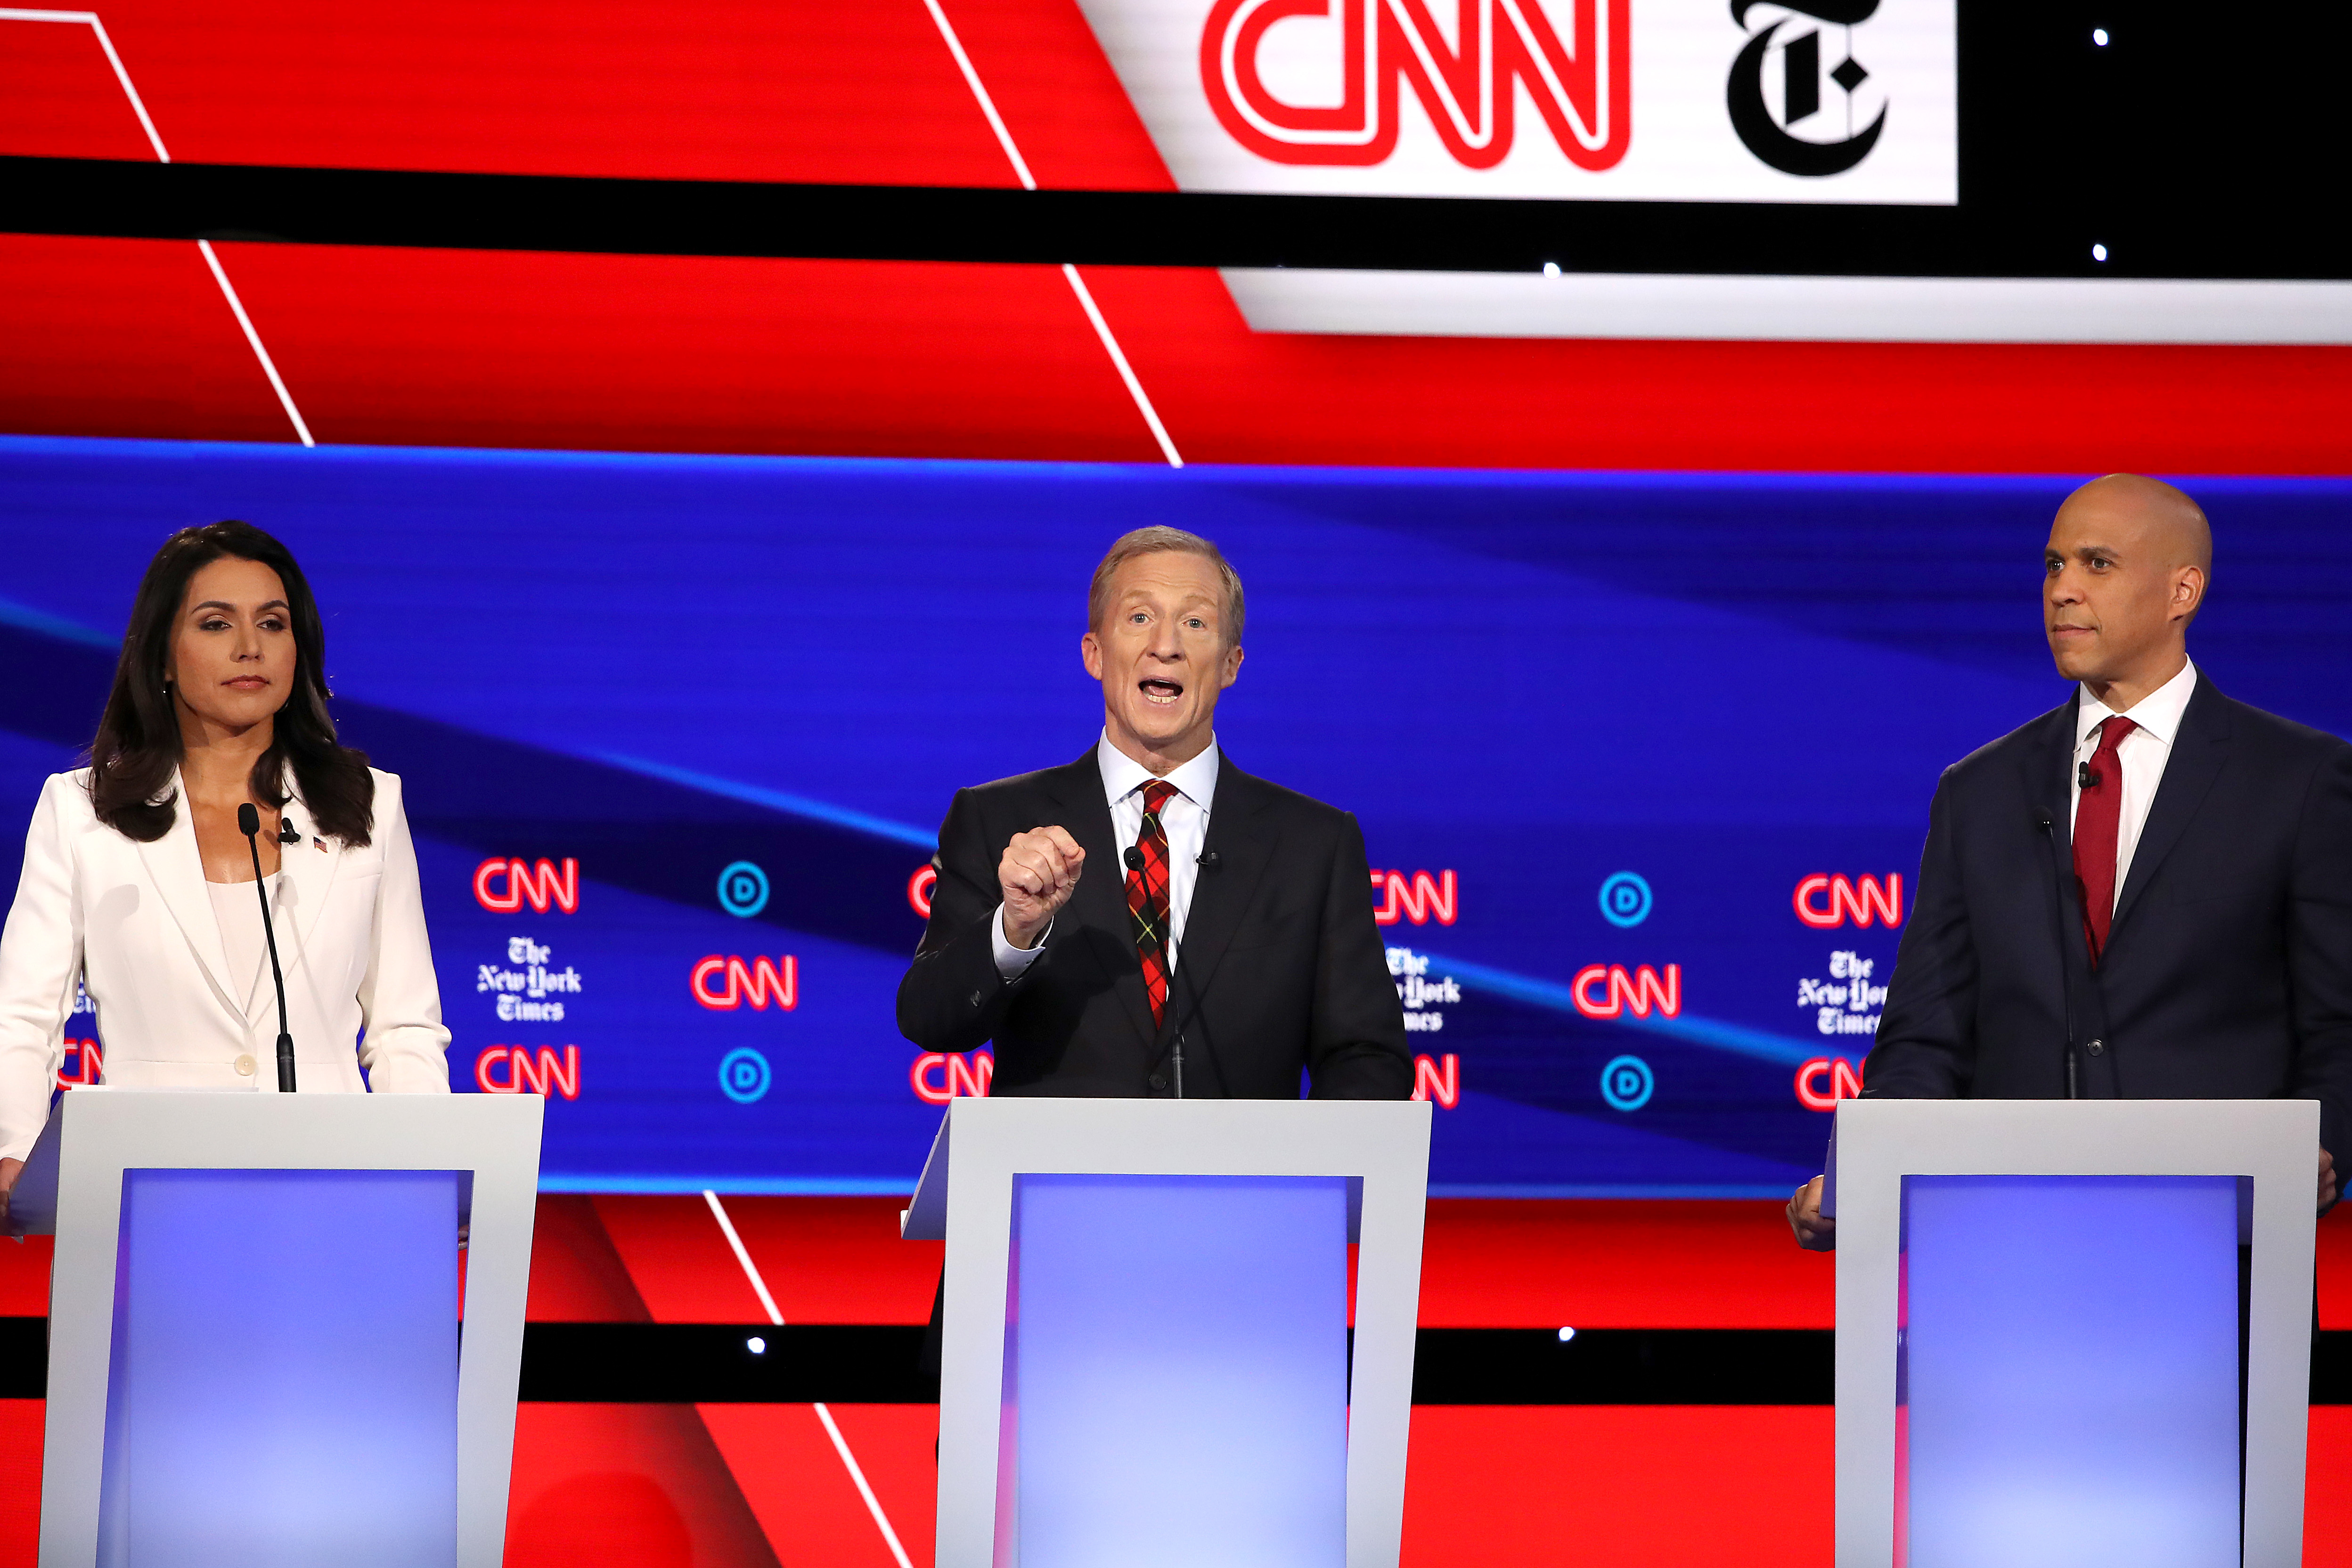 WESTERVILLE, OHIO - OCTOBER 15: Billionaire Tom Steyer (C) speaks as Rep. Tulsi Gabbard (D-HI) and Sen. Cory Booker (D-NJ) look on during the Democratic Presidential Debate at Otterbein University on October 15, 2019 in Westerville, Ohio (Win McNamee/Getty Images)